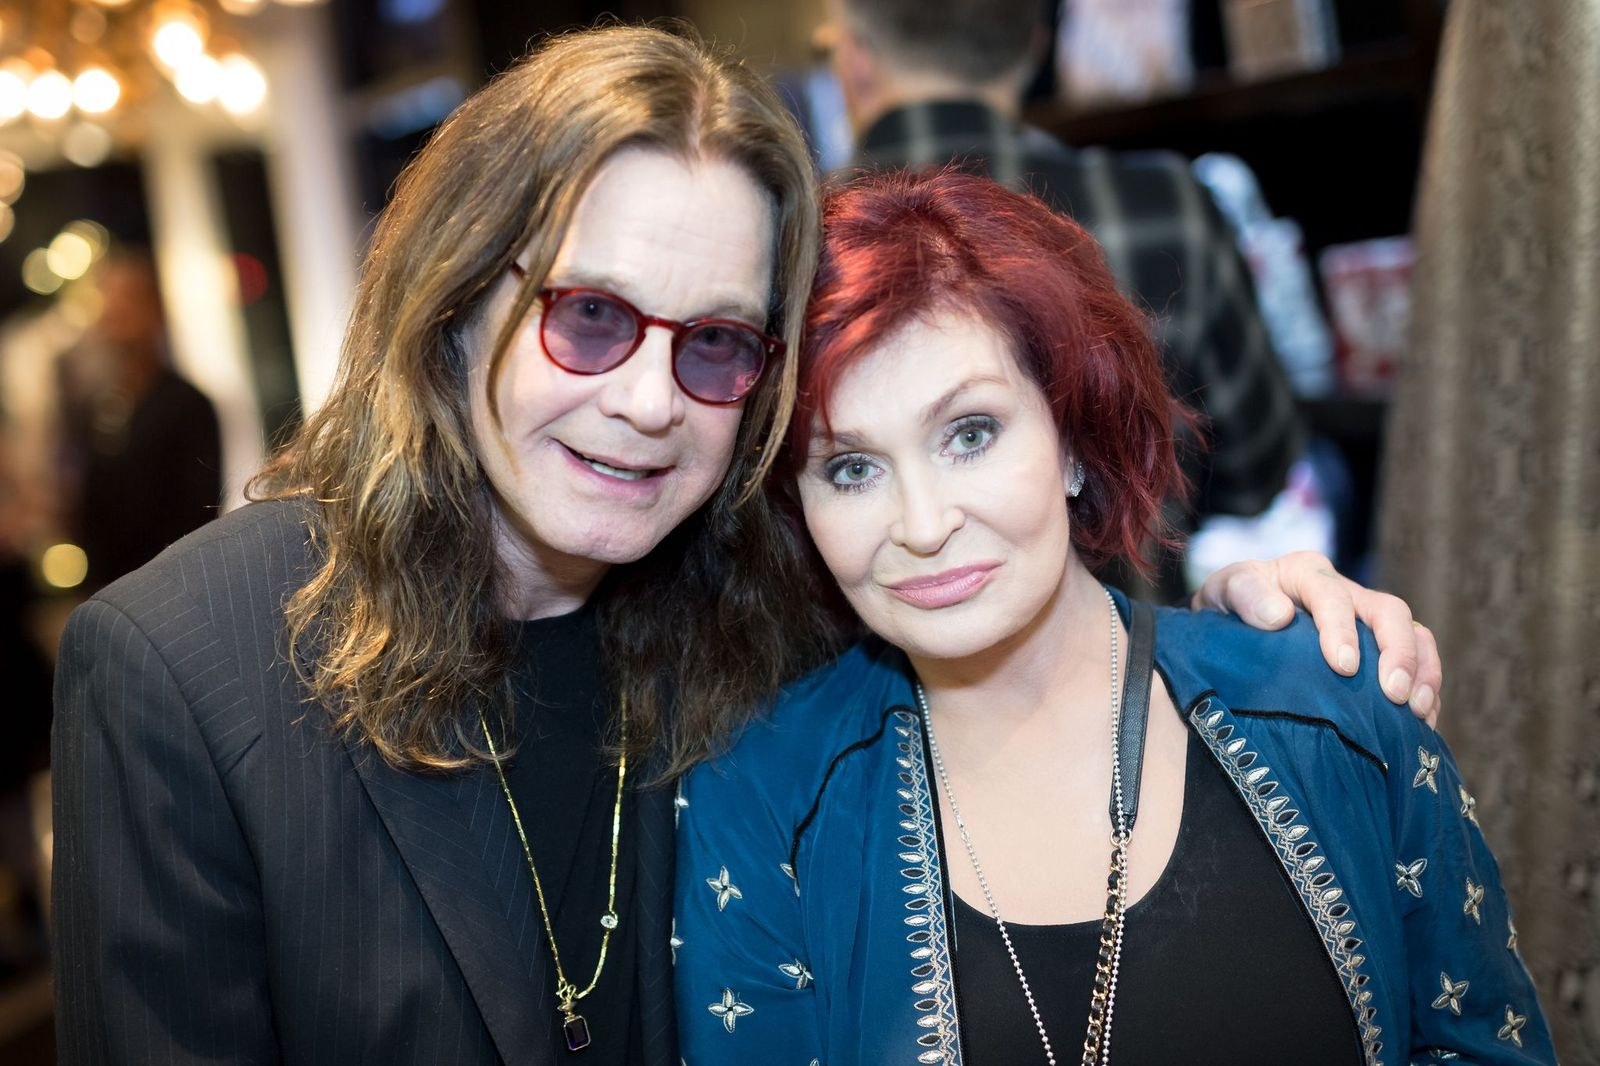 Ozzy and Sharon Osbourne at the Billy Morrison - Aude Somnia Solo Exhibition on September 28, 2017 in Los Angeles, California. | Photo: Getty Images